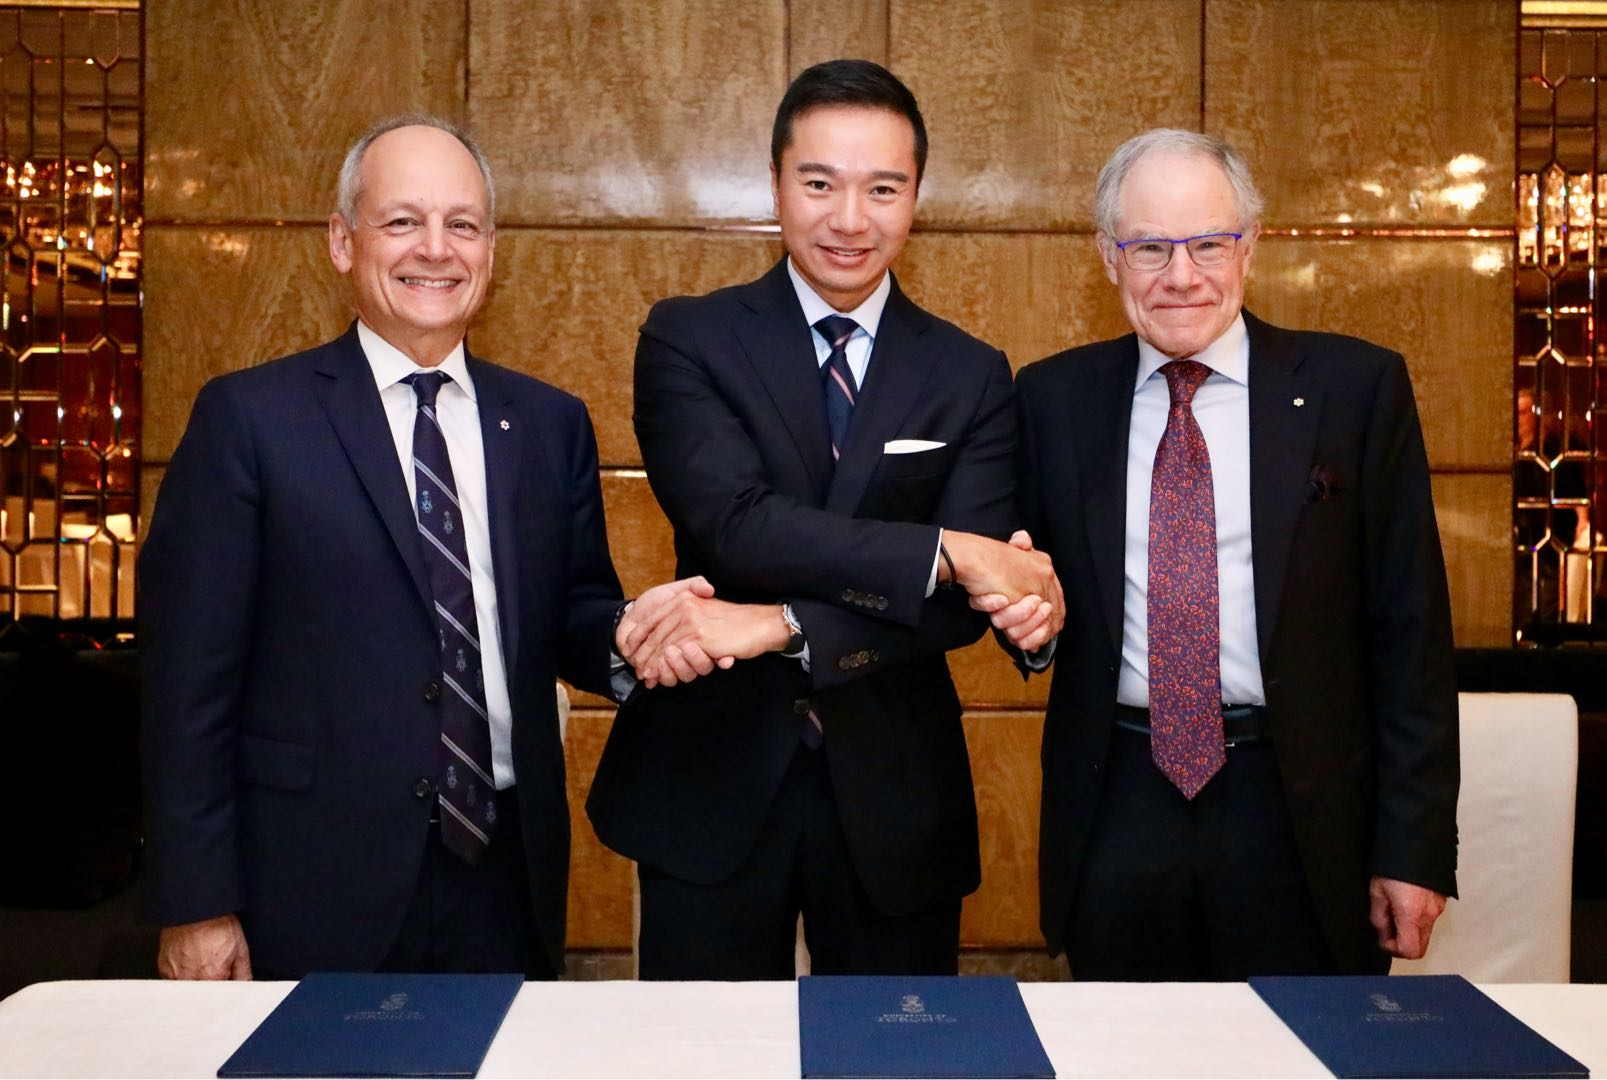 Tenniel Chu's gift establishes first sports management programme with largest ever donation to Department of Management at UniversityofToronto Scarborough